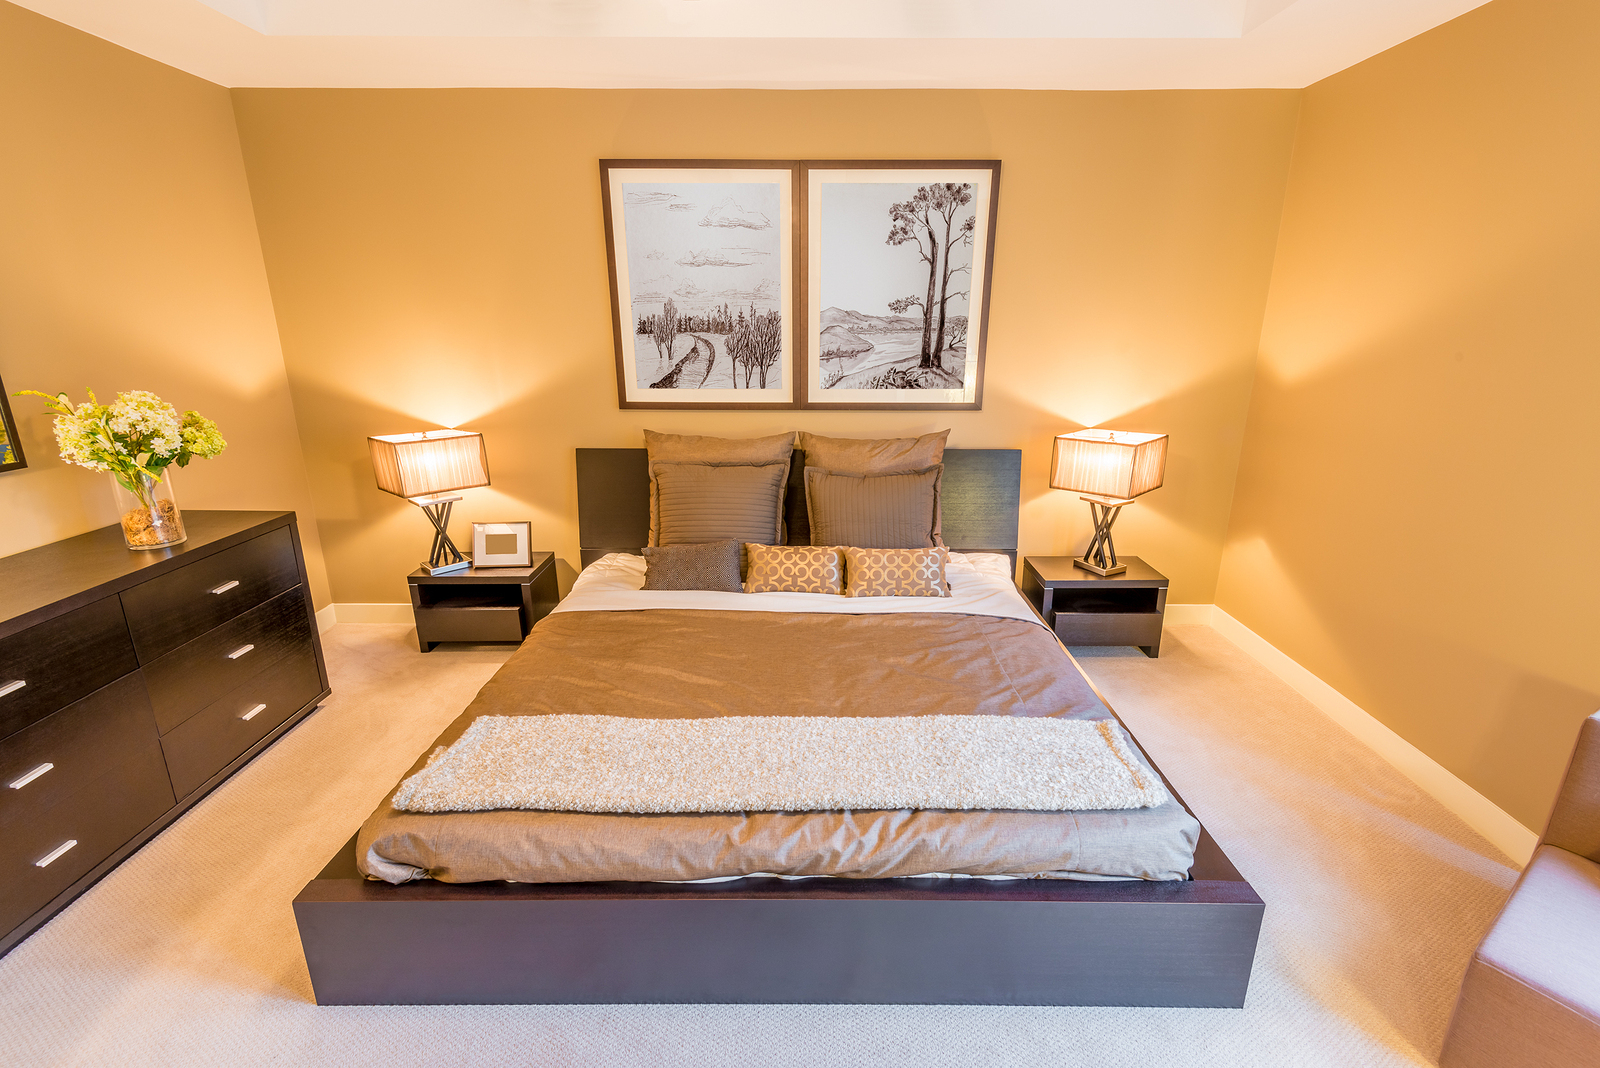 4 Modern Bedroom Interior Design Themes within 13 Awesome Tricks of How to Build Modern Bedroom Decorations